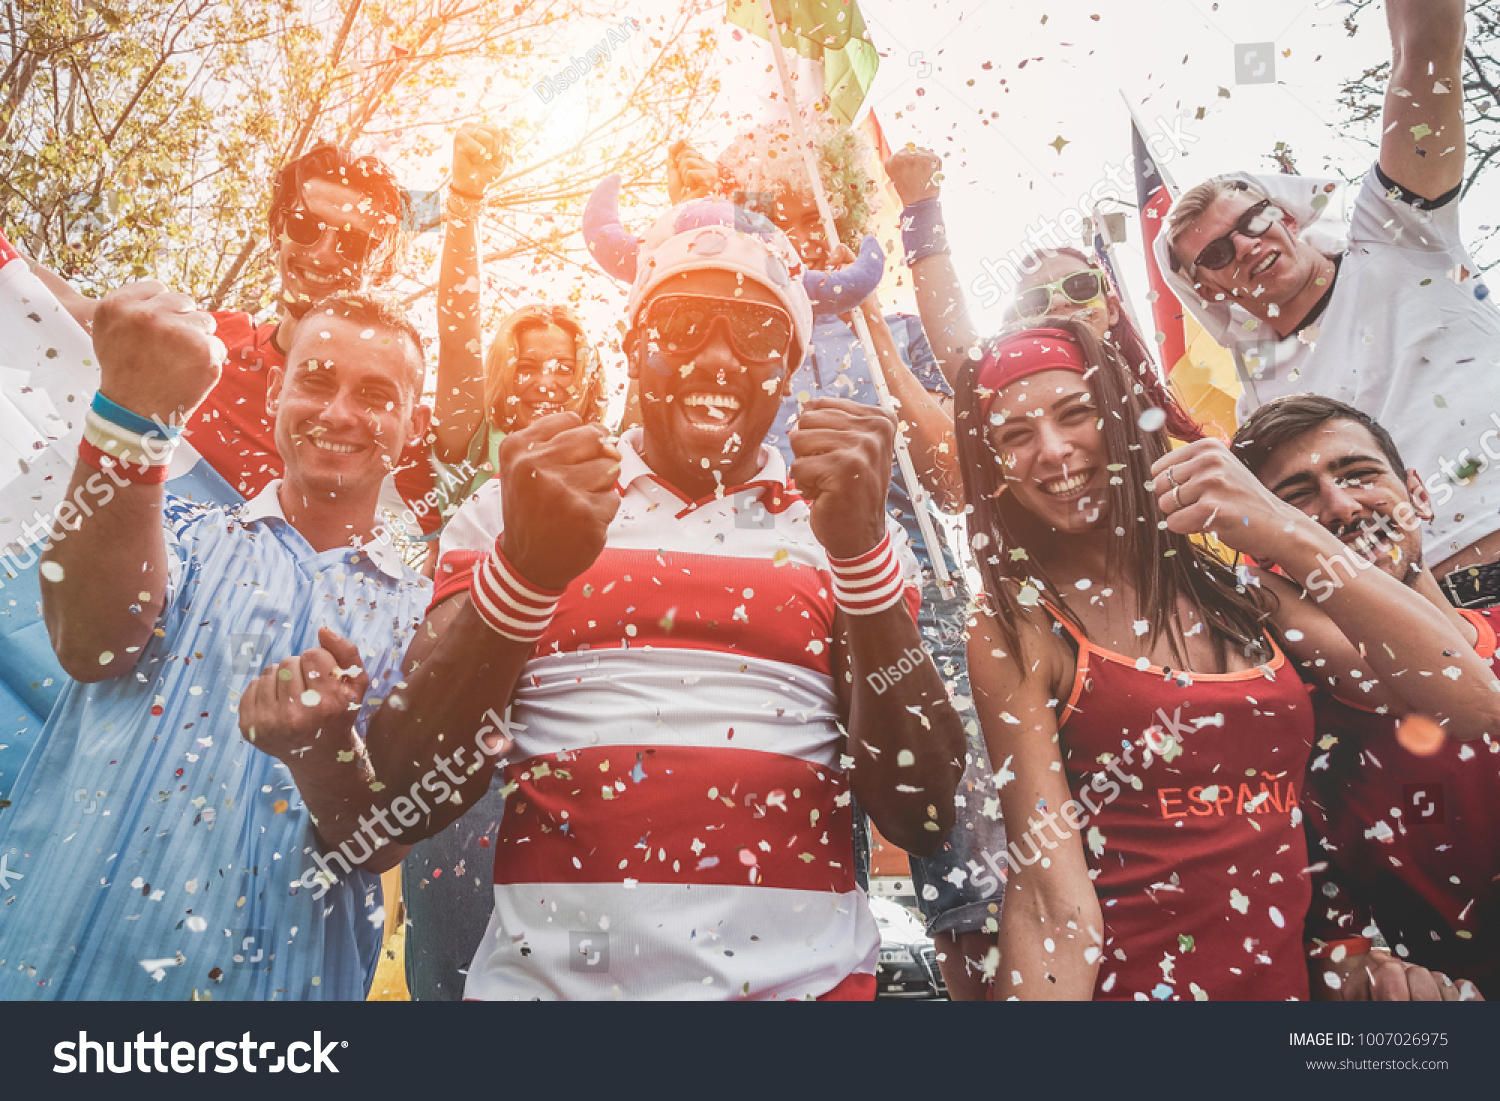 Multinational football supporters celebrating the begin of world competition - Happy multiracial people having fun together outside of stadium - Main focus on black man - Sport and bonding concept